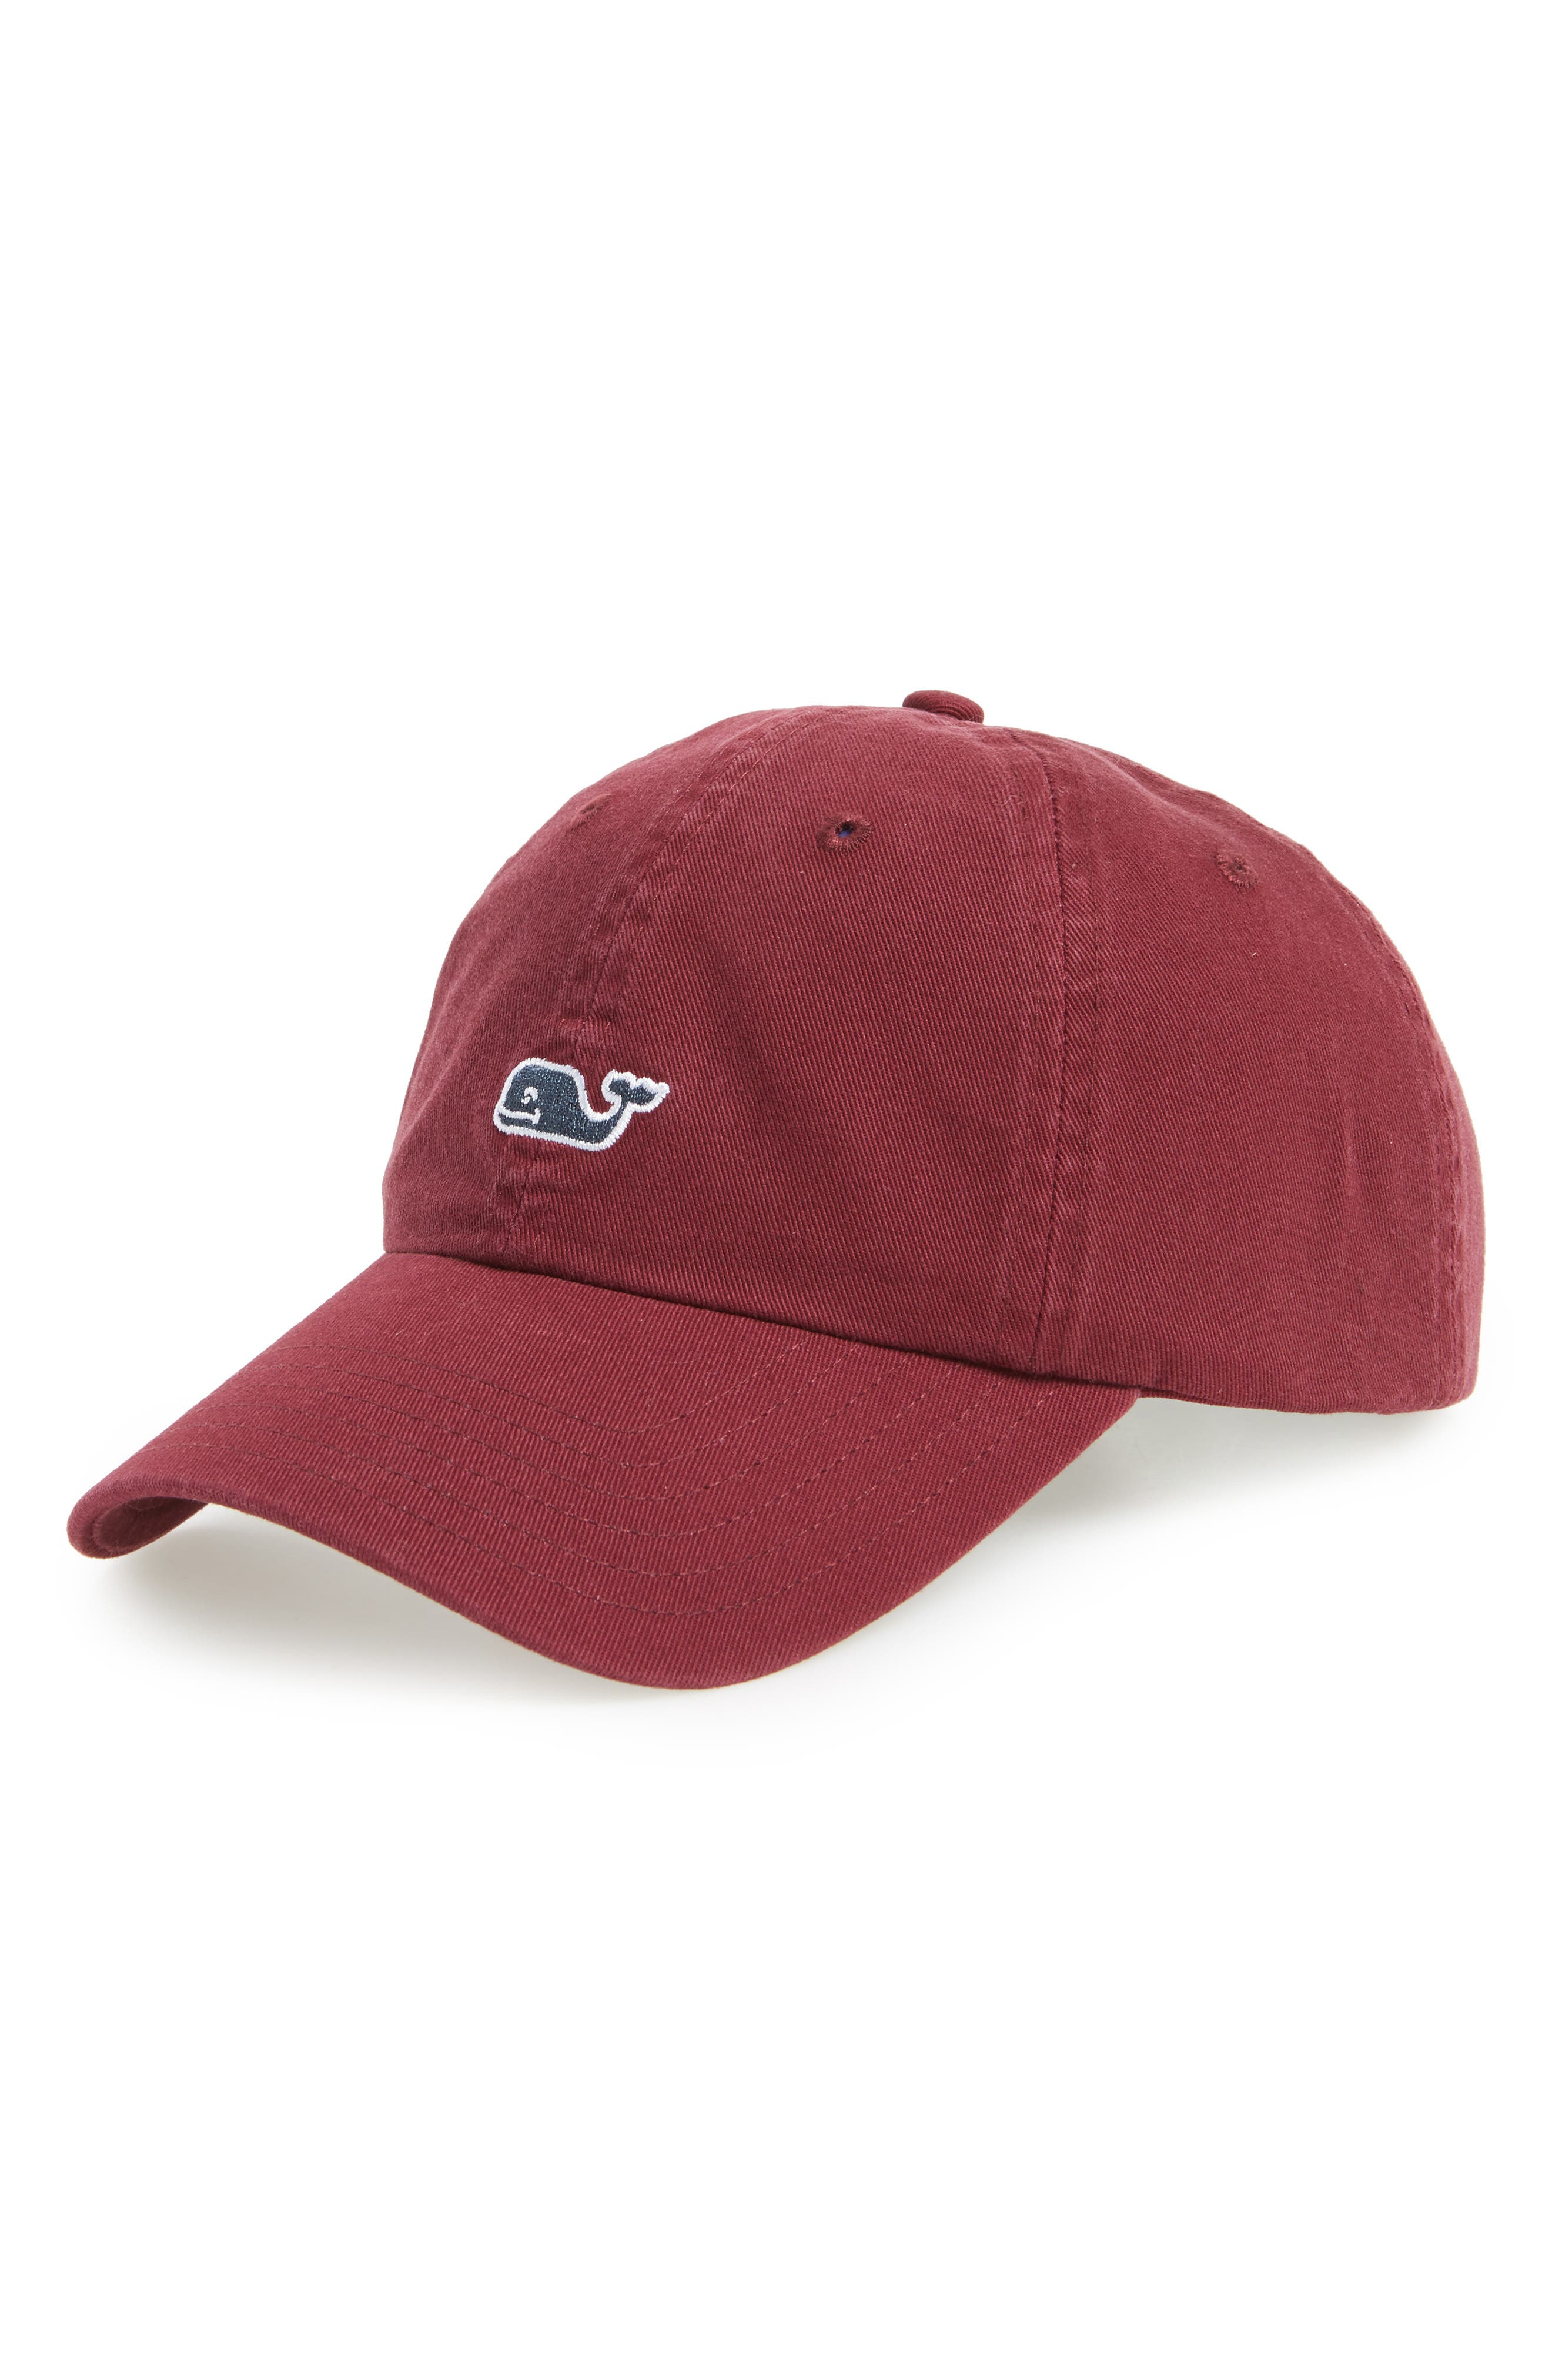 Alternate Image 1 Selected - vineyard vines Whale Logo Cap